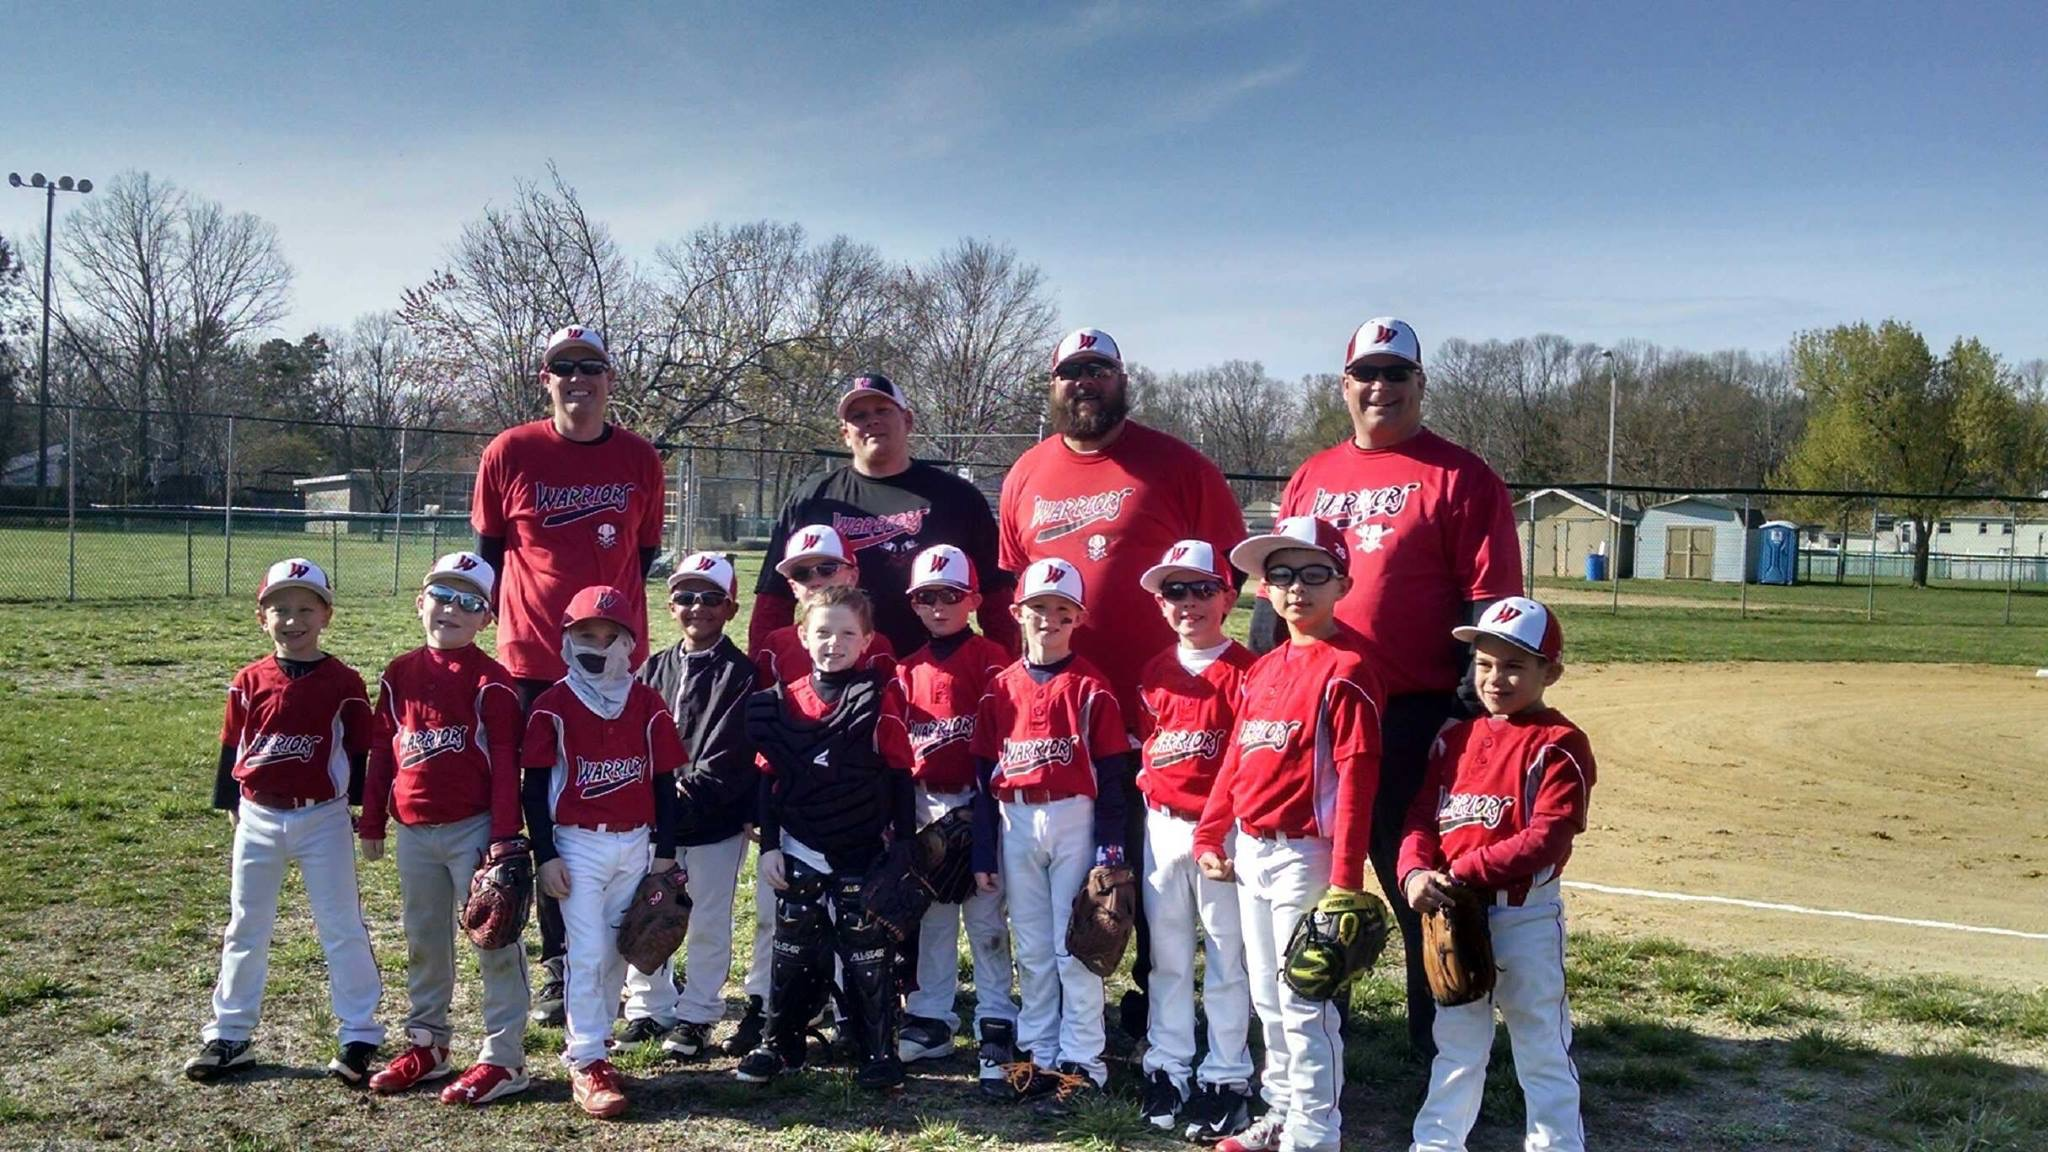 7U SOUTH JERSEY WARRIORS